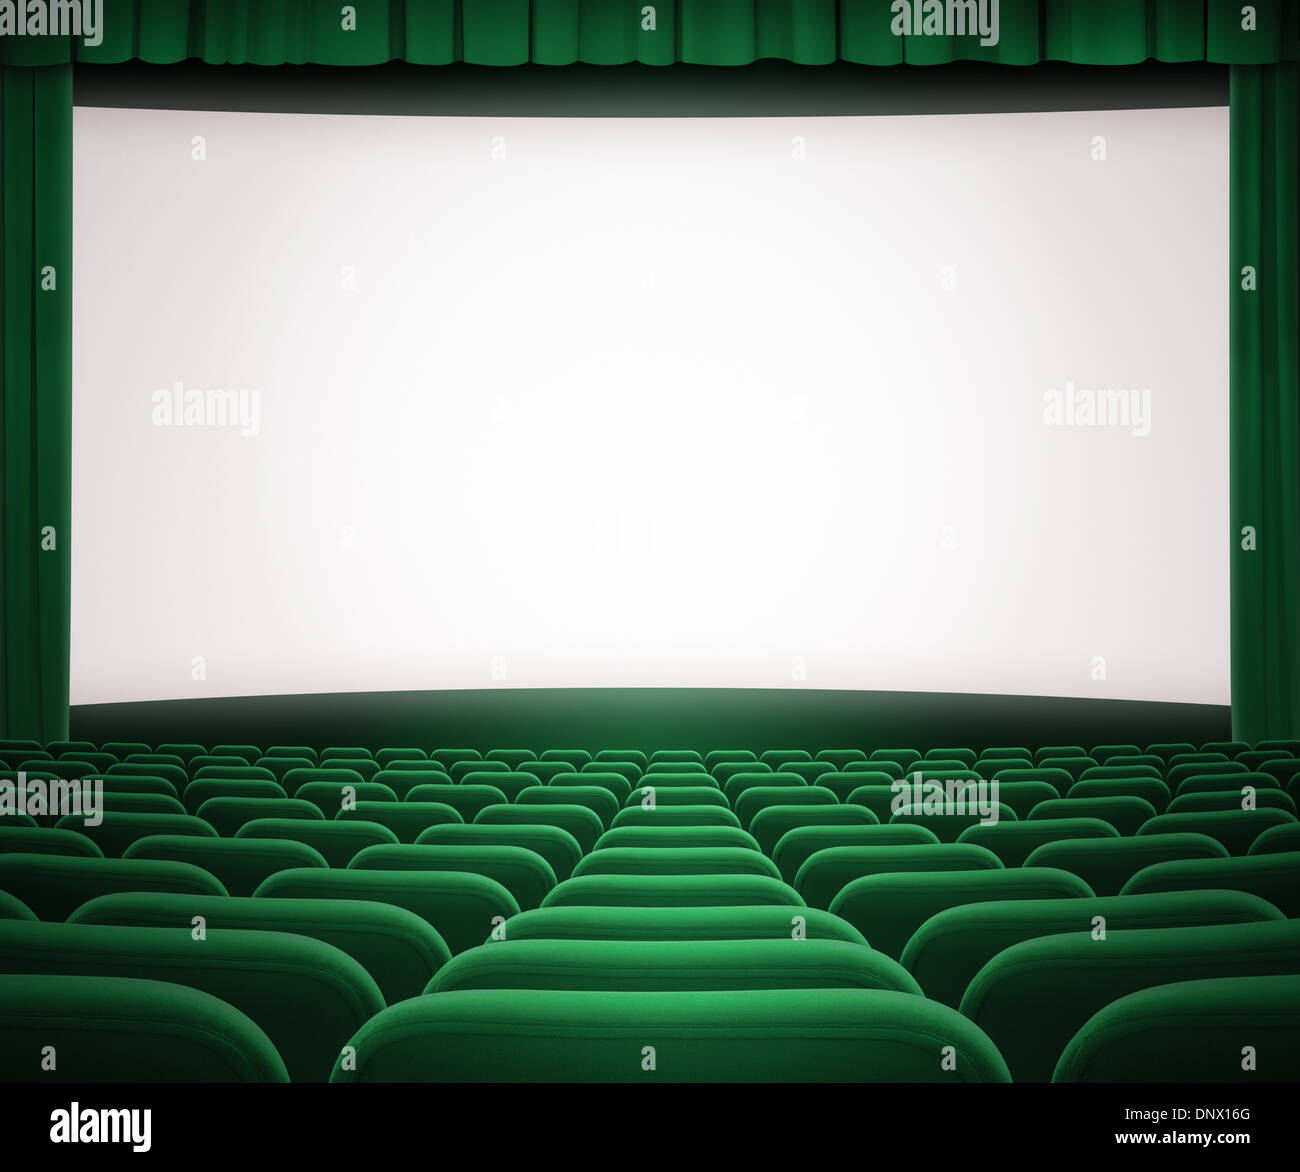 Page 2 Cinema Screen Green High Resolution Stock Photography And Images Alamy